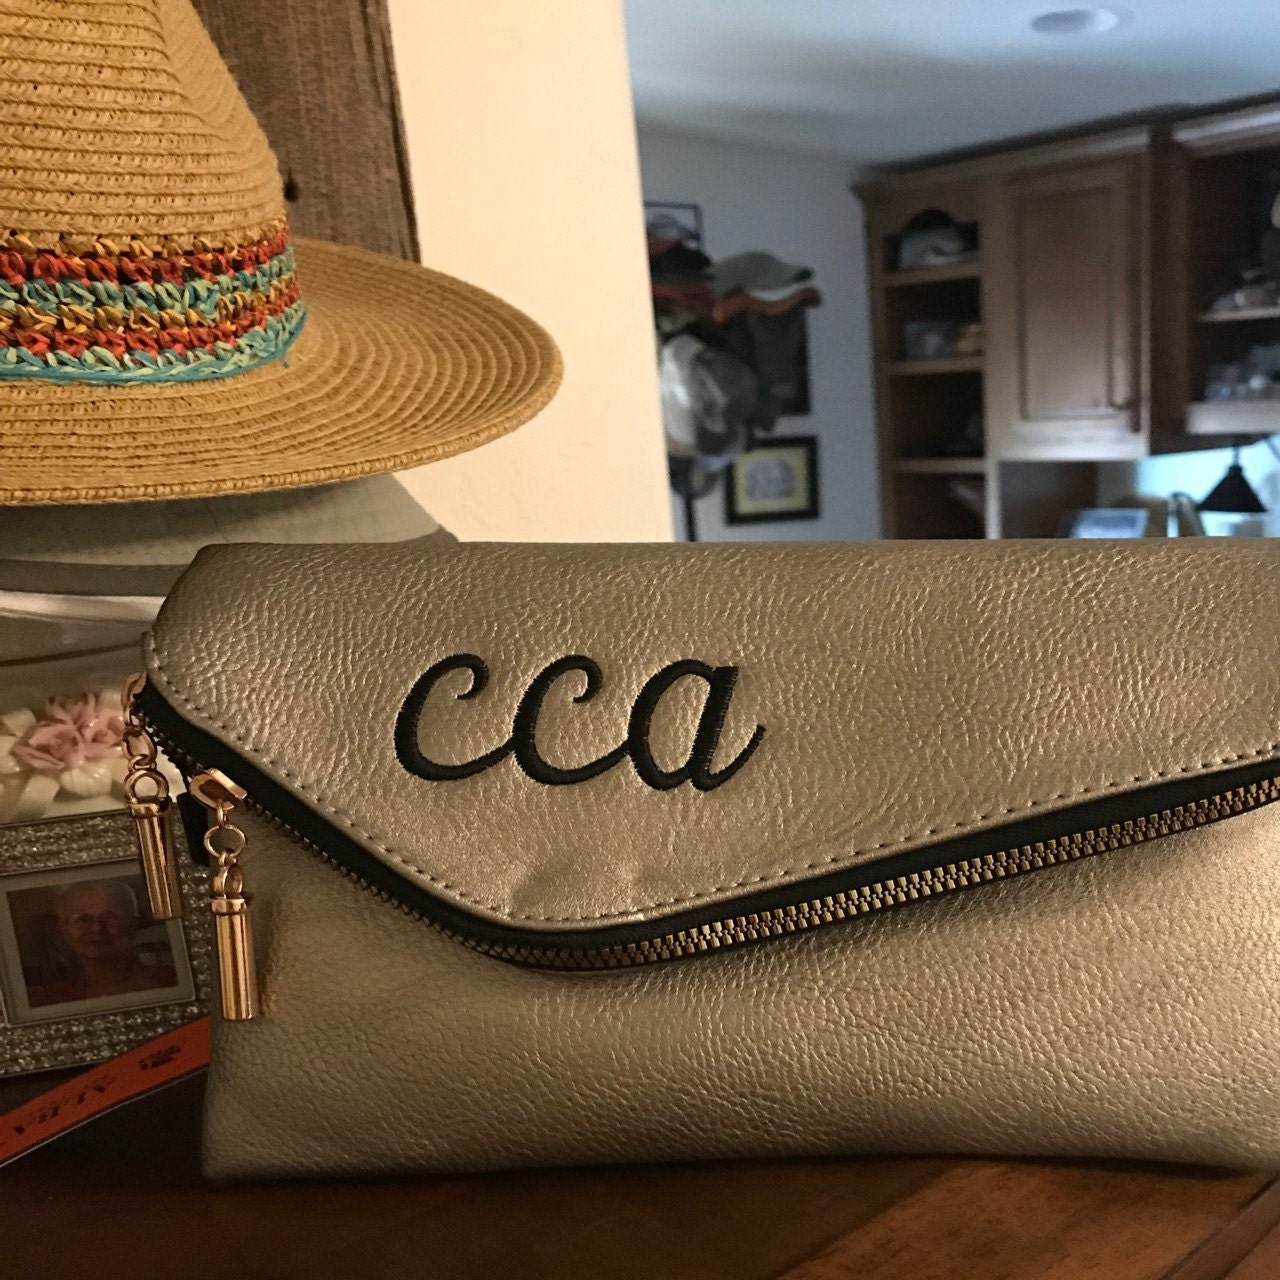 Collene Costello added a photo of their purchase